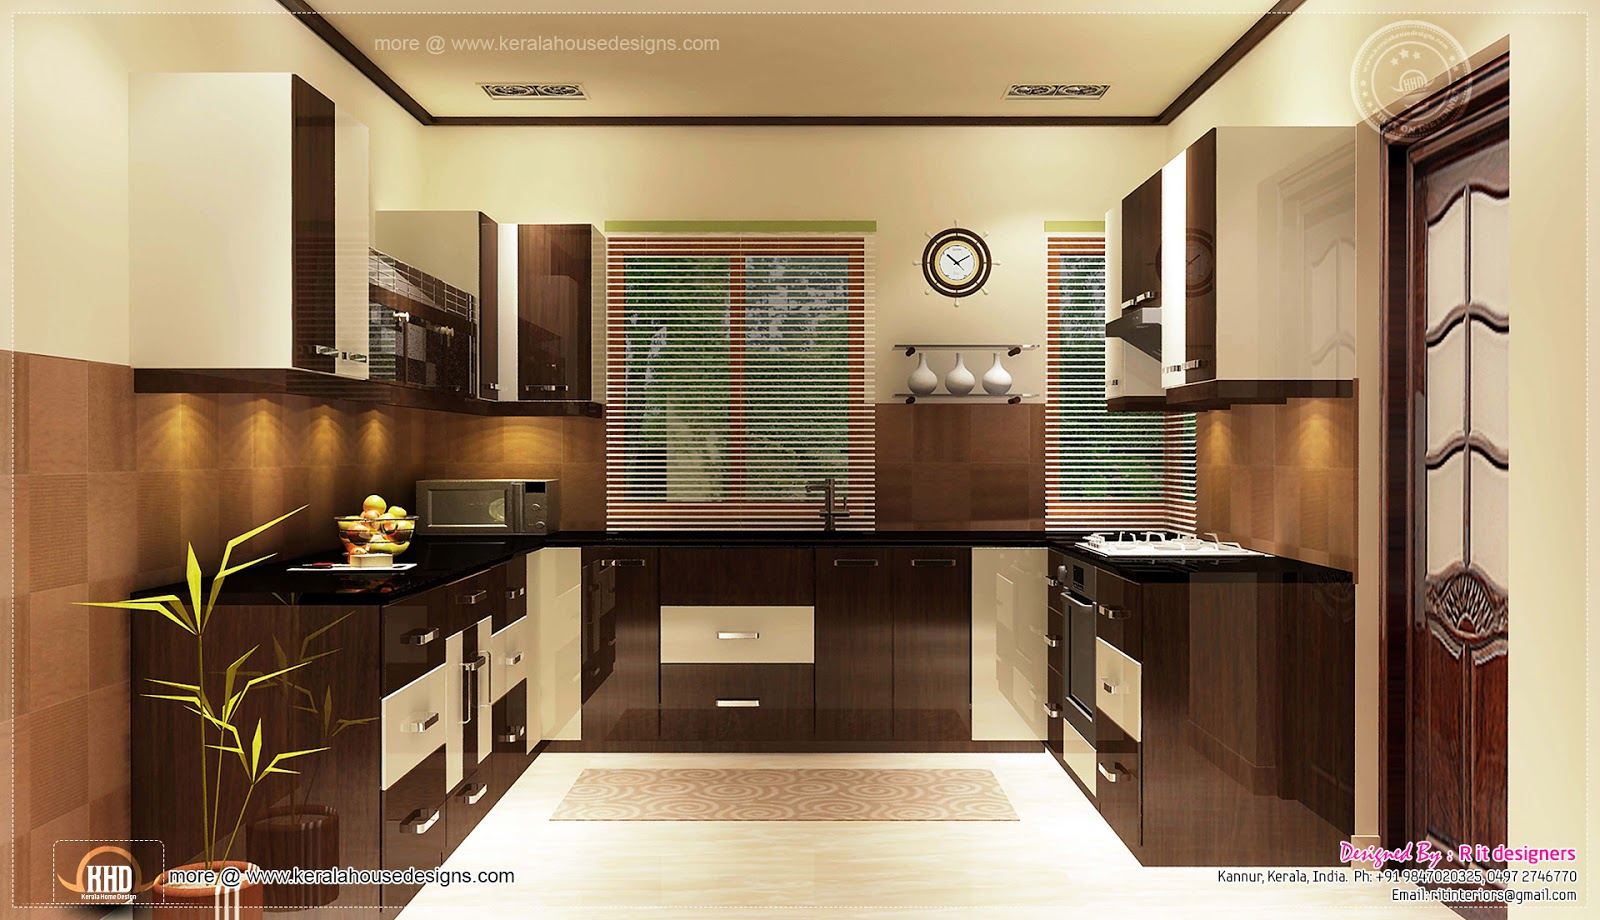 Home interior designs by rit designers kerala home Low cost interior design for homes in kerala